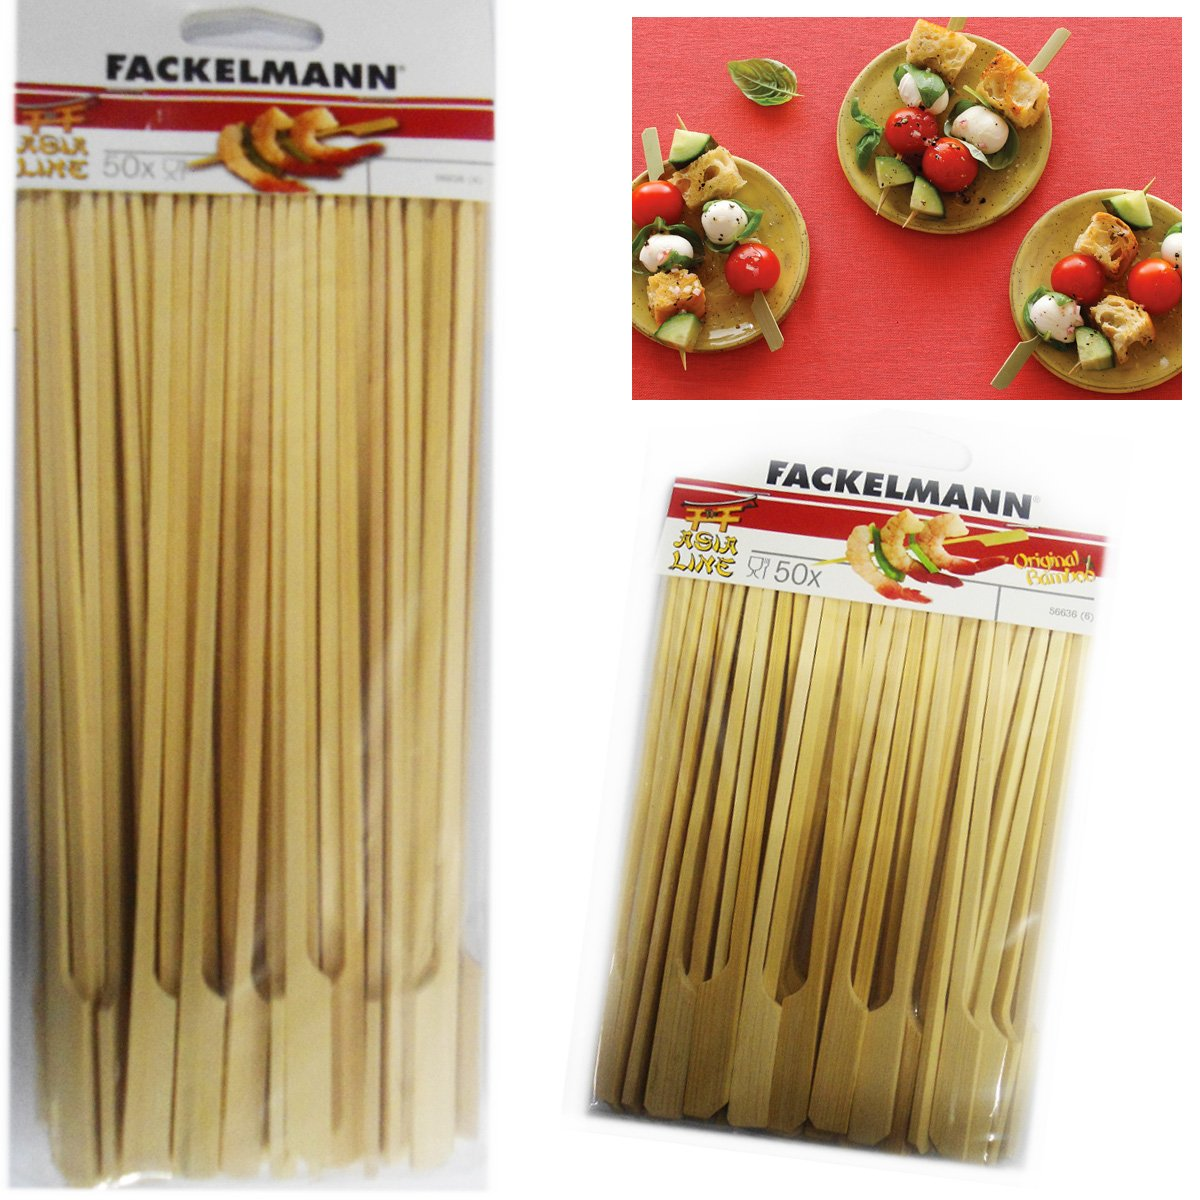 50 Bamboo Skewers Paddle Sticks Wooden Grill Kebab Barbeque Party Stick 15CM Pack by Fackelmann